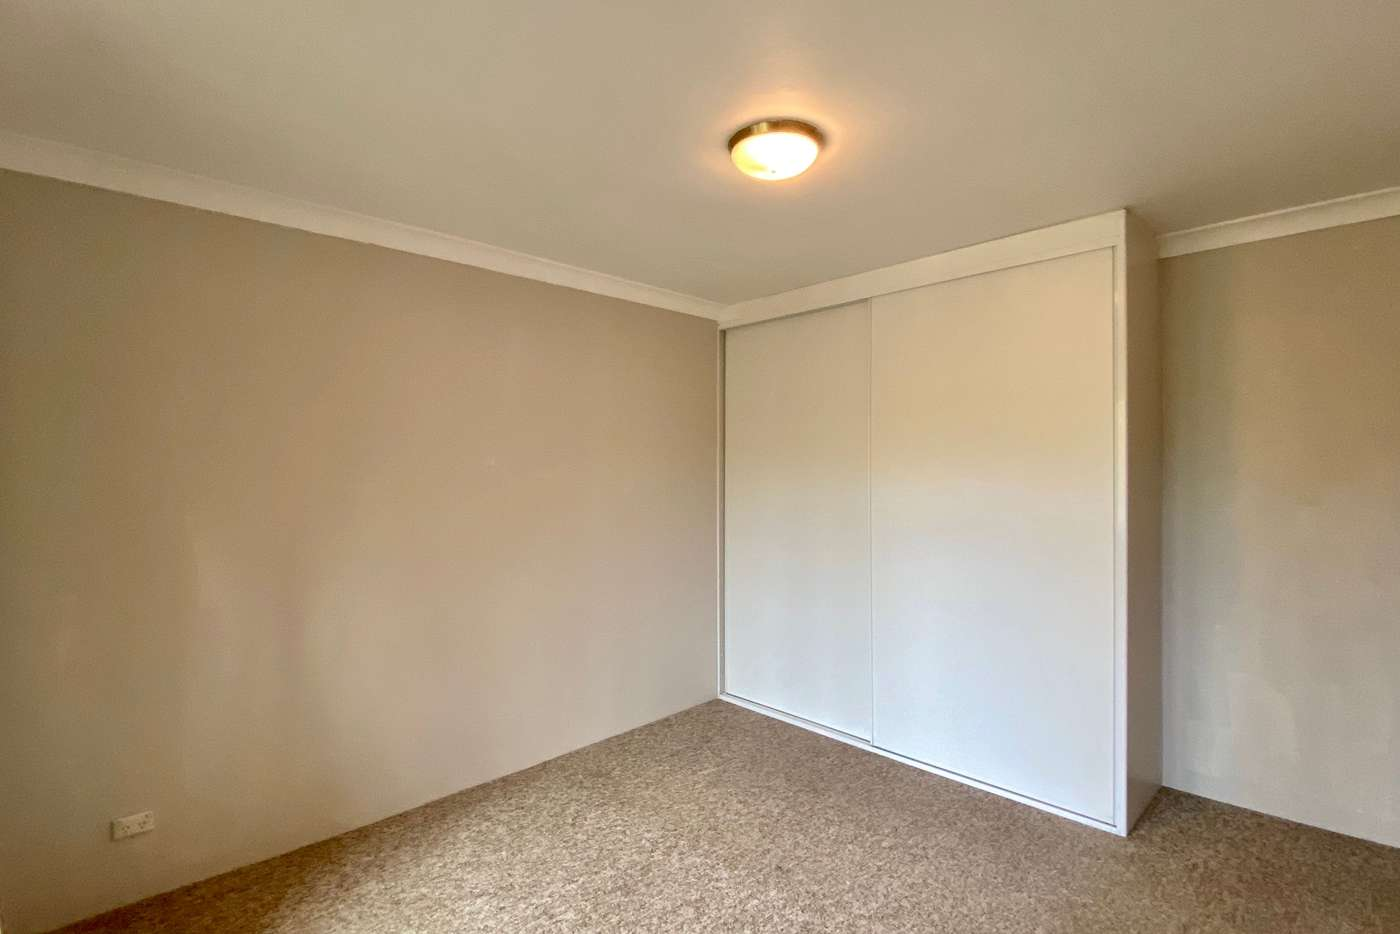 Seventh view of Homely unit listing, 3/27 Apsley Street, Penshurst NSW 2222